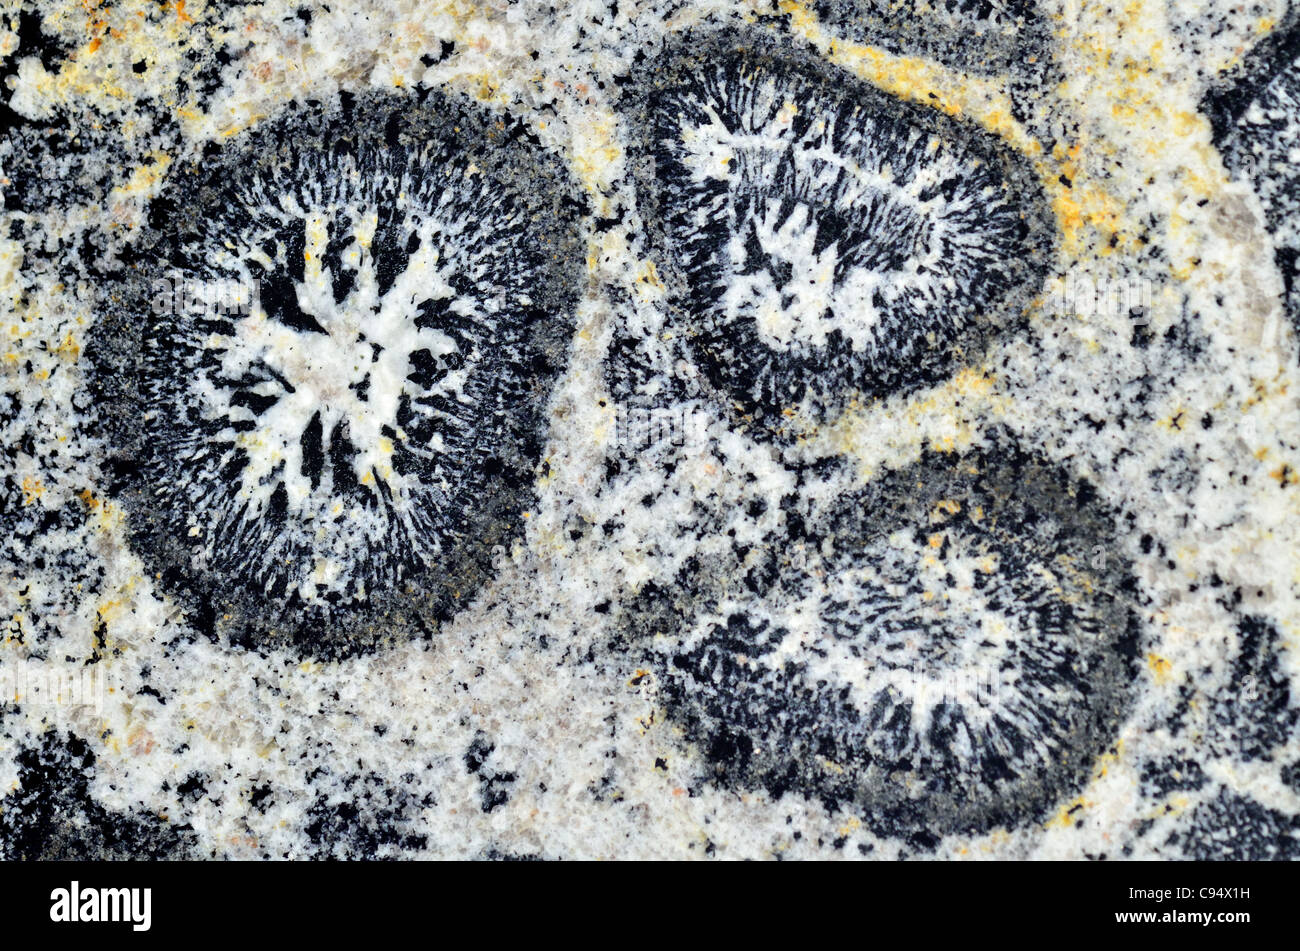 Polished surface of orbicular granite from Australia. - Stock Image